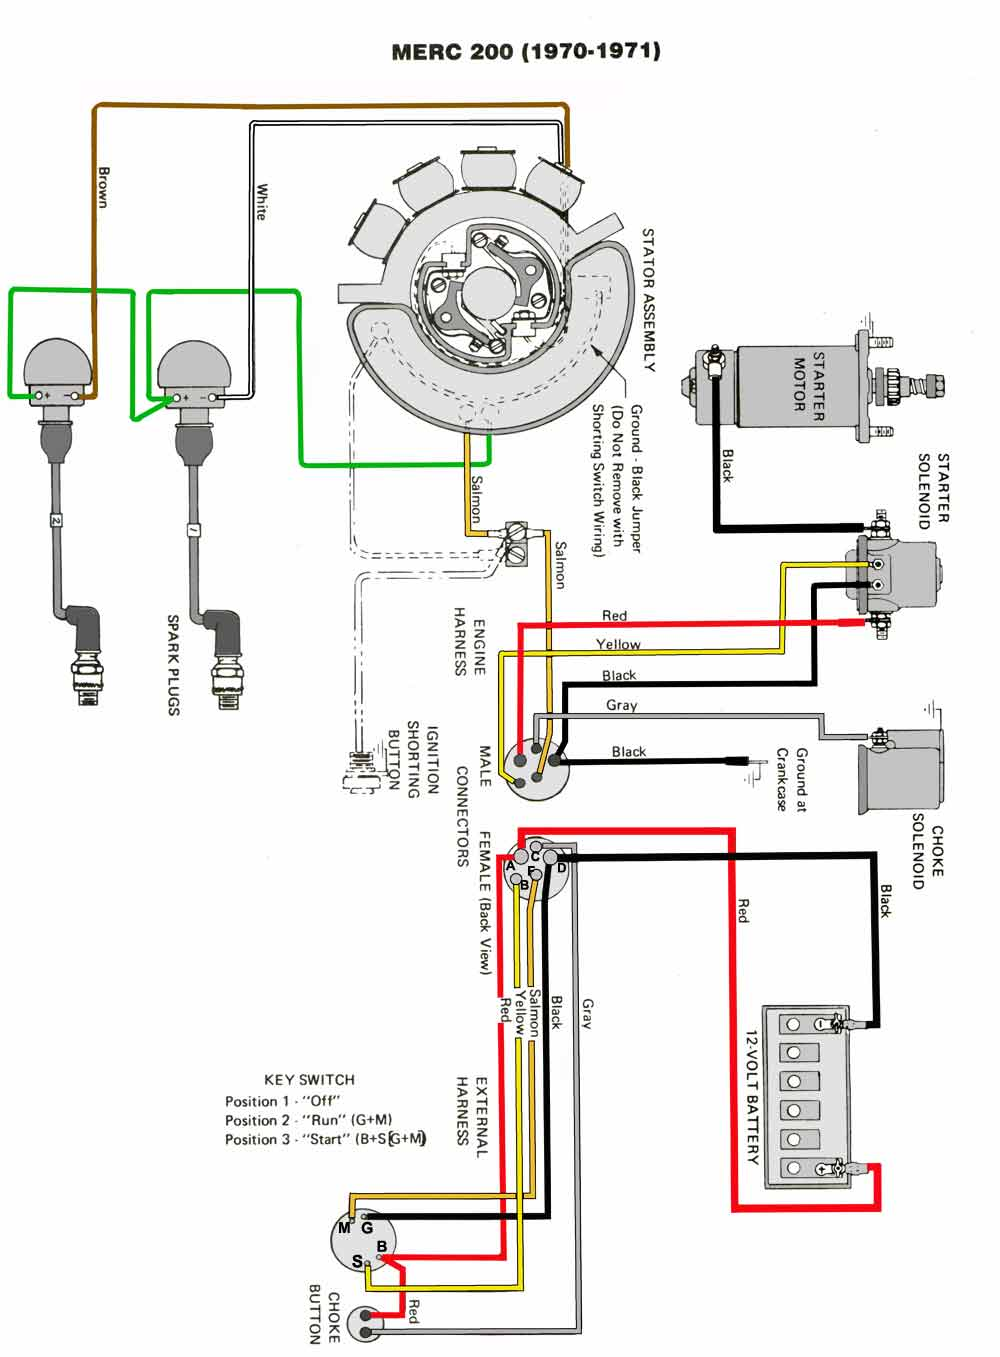 hight resolution of 40 hp yamaha wiring diagram wiring diagram hub rh 9 4 wellnessurlaub 4you de 40 hp johnson wiring diagram 1989 yamaha 40 hp outboard wiring diagram